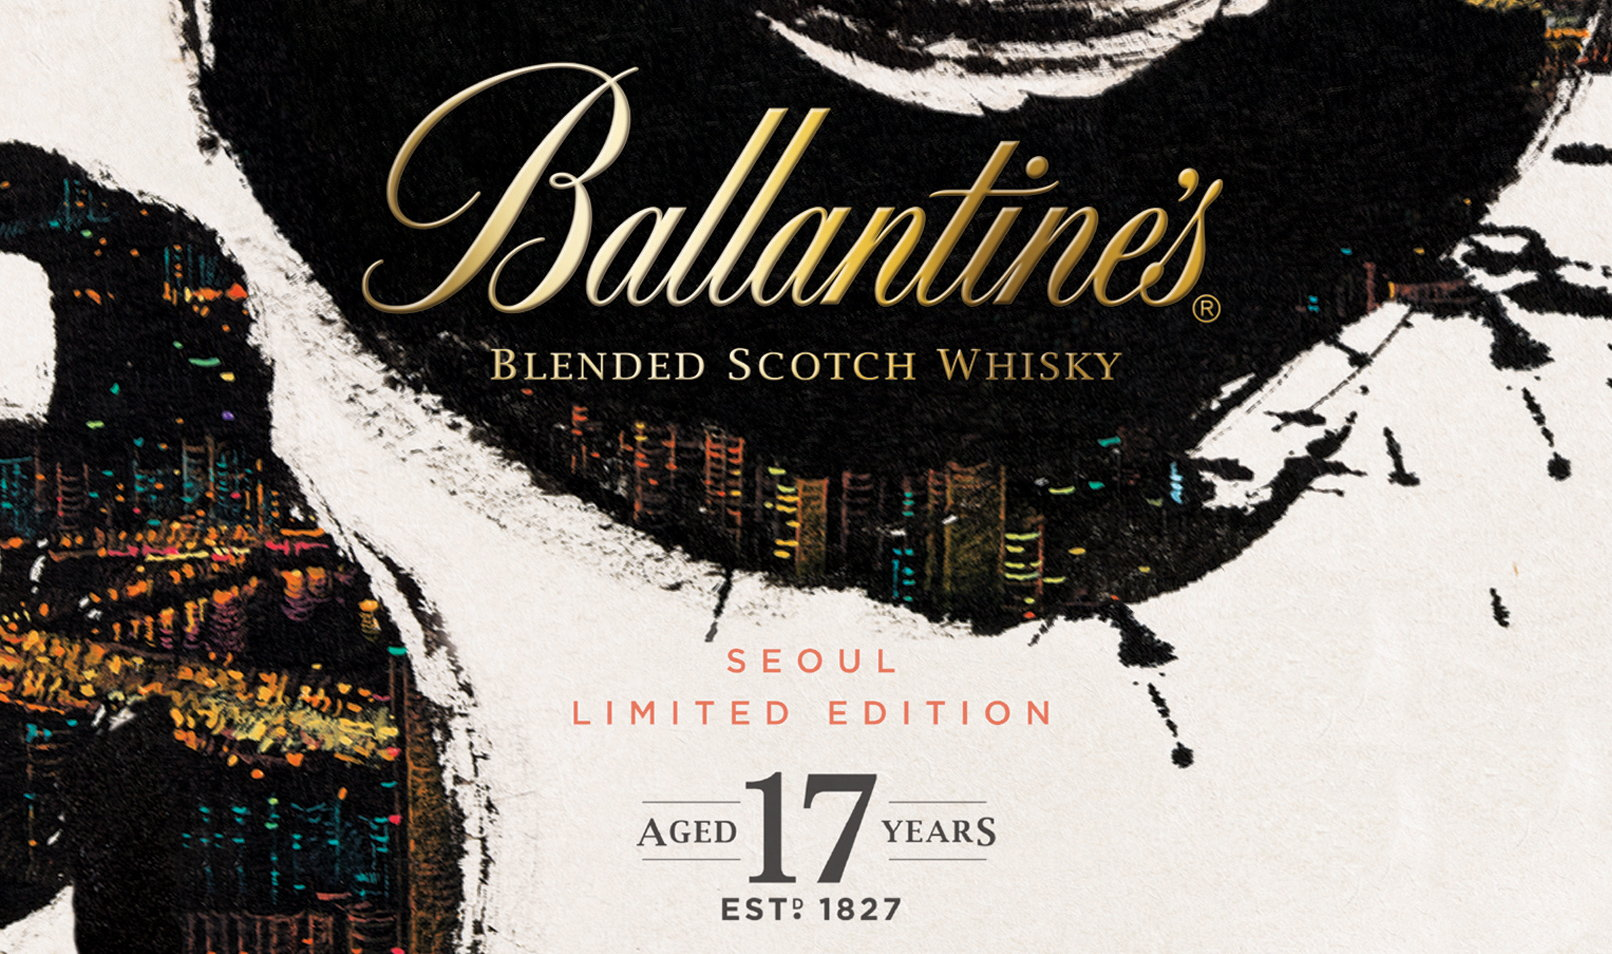 Ballantines Seoul Limited Edition